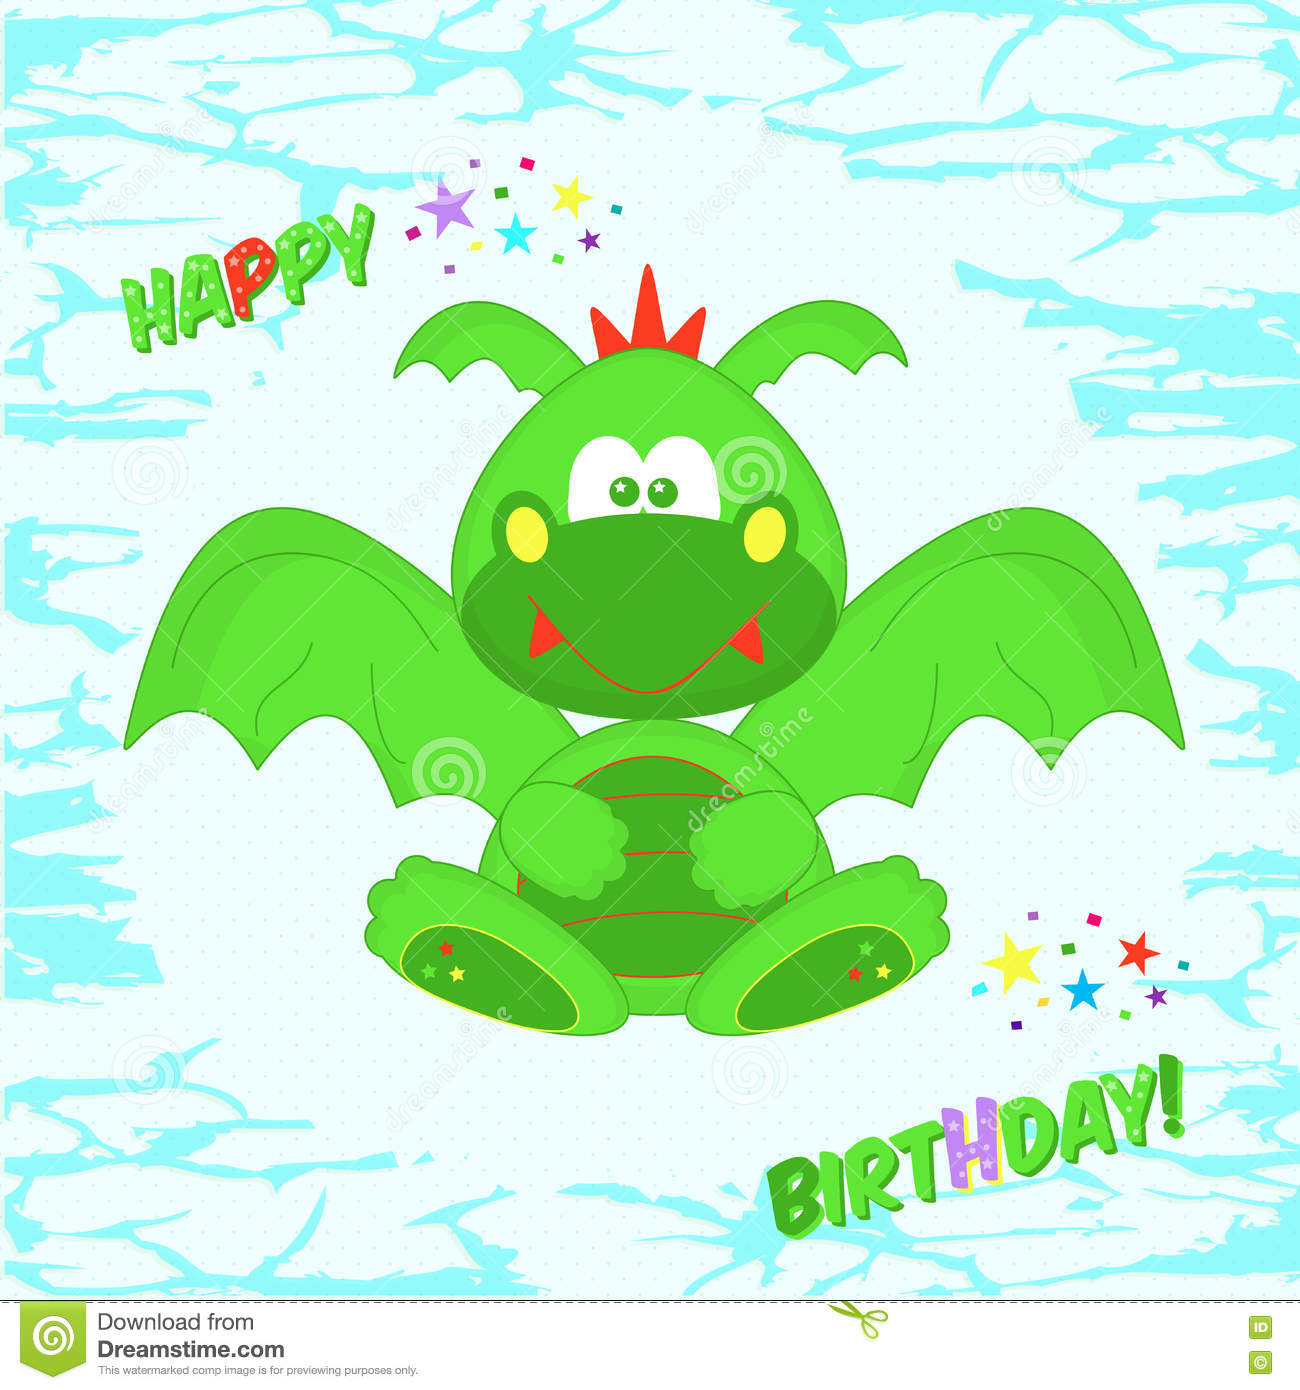 Shirt design card - Greeting Card With Birthday T Shirt Design For Kids